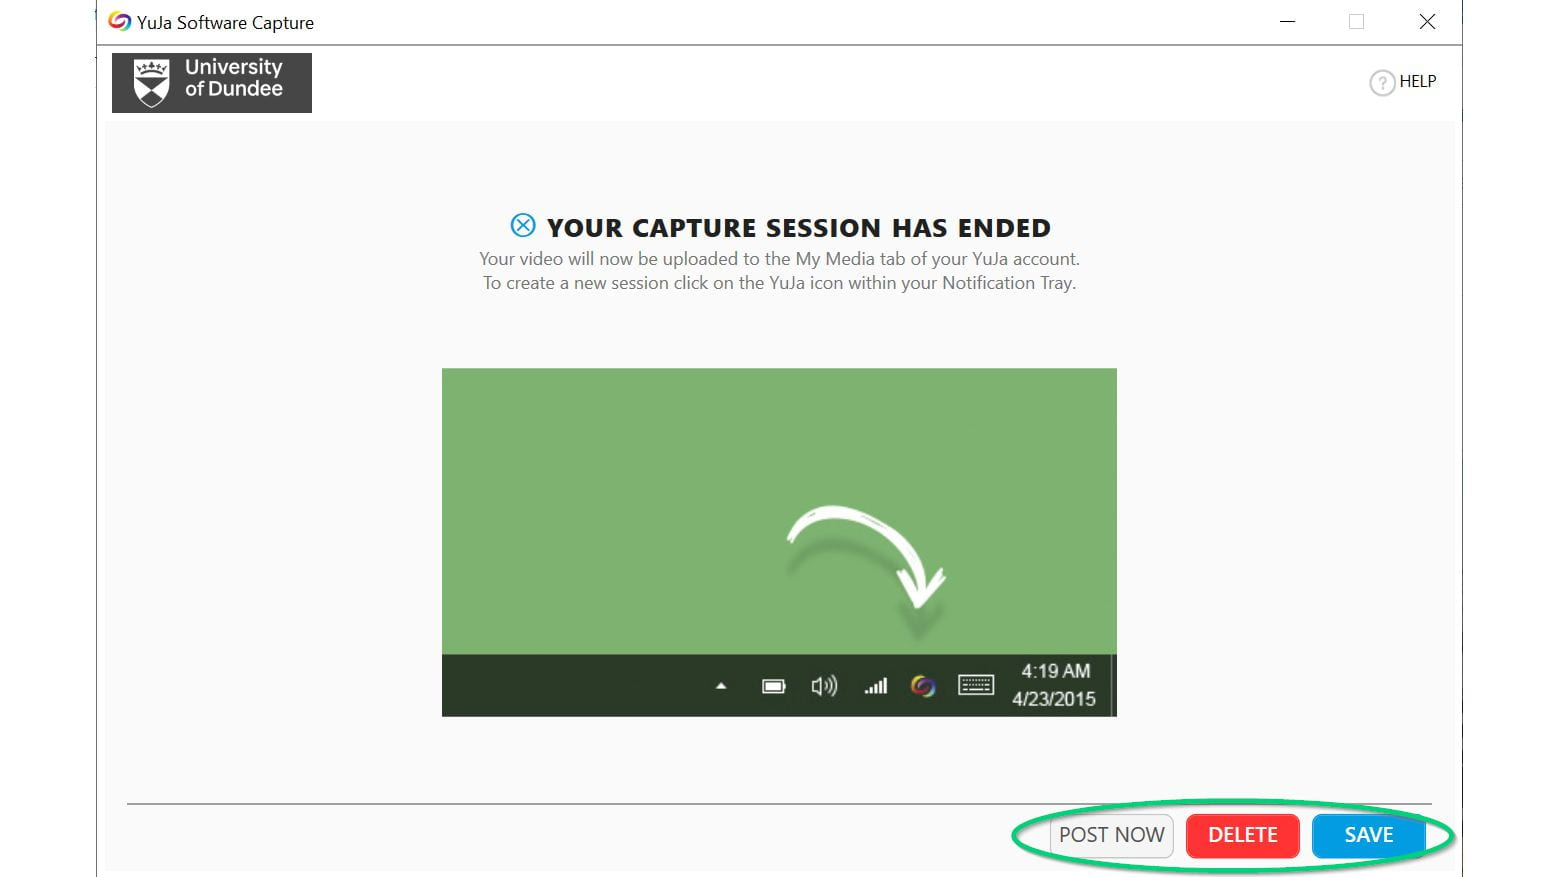 Image of capture session has ended